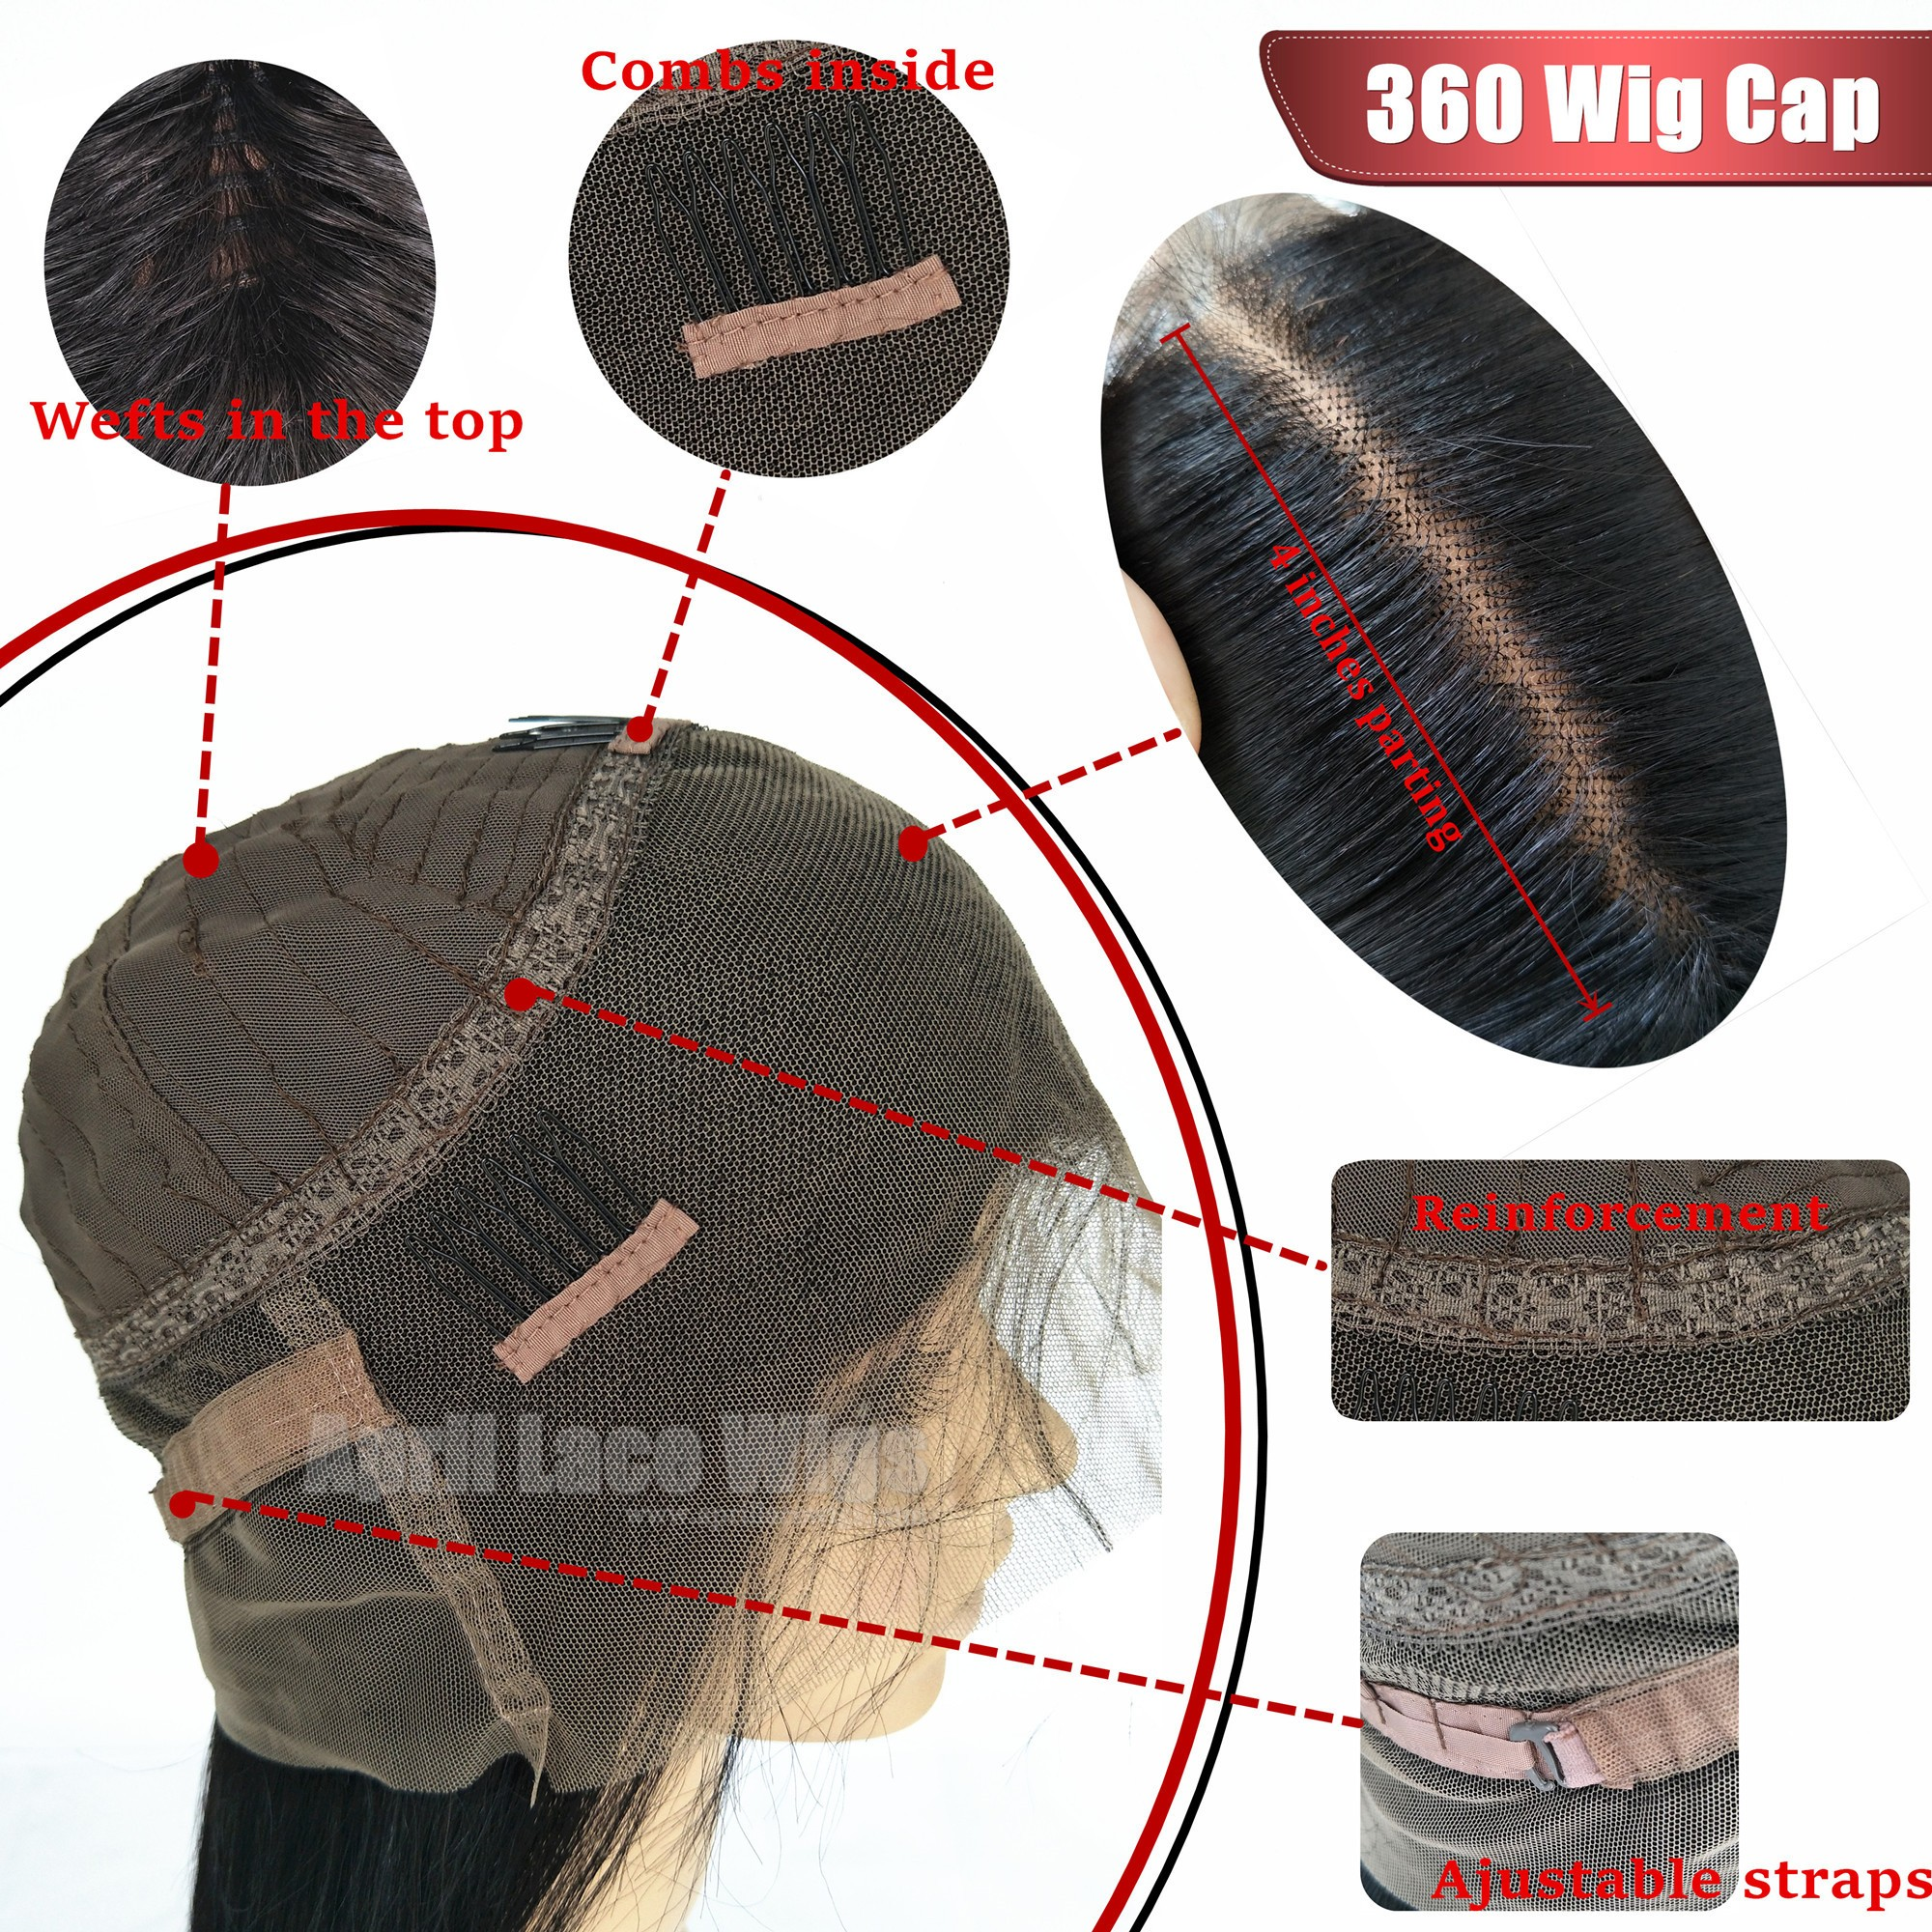 360 cap construction